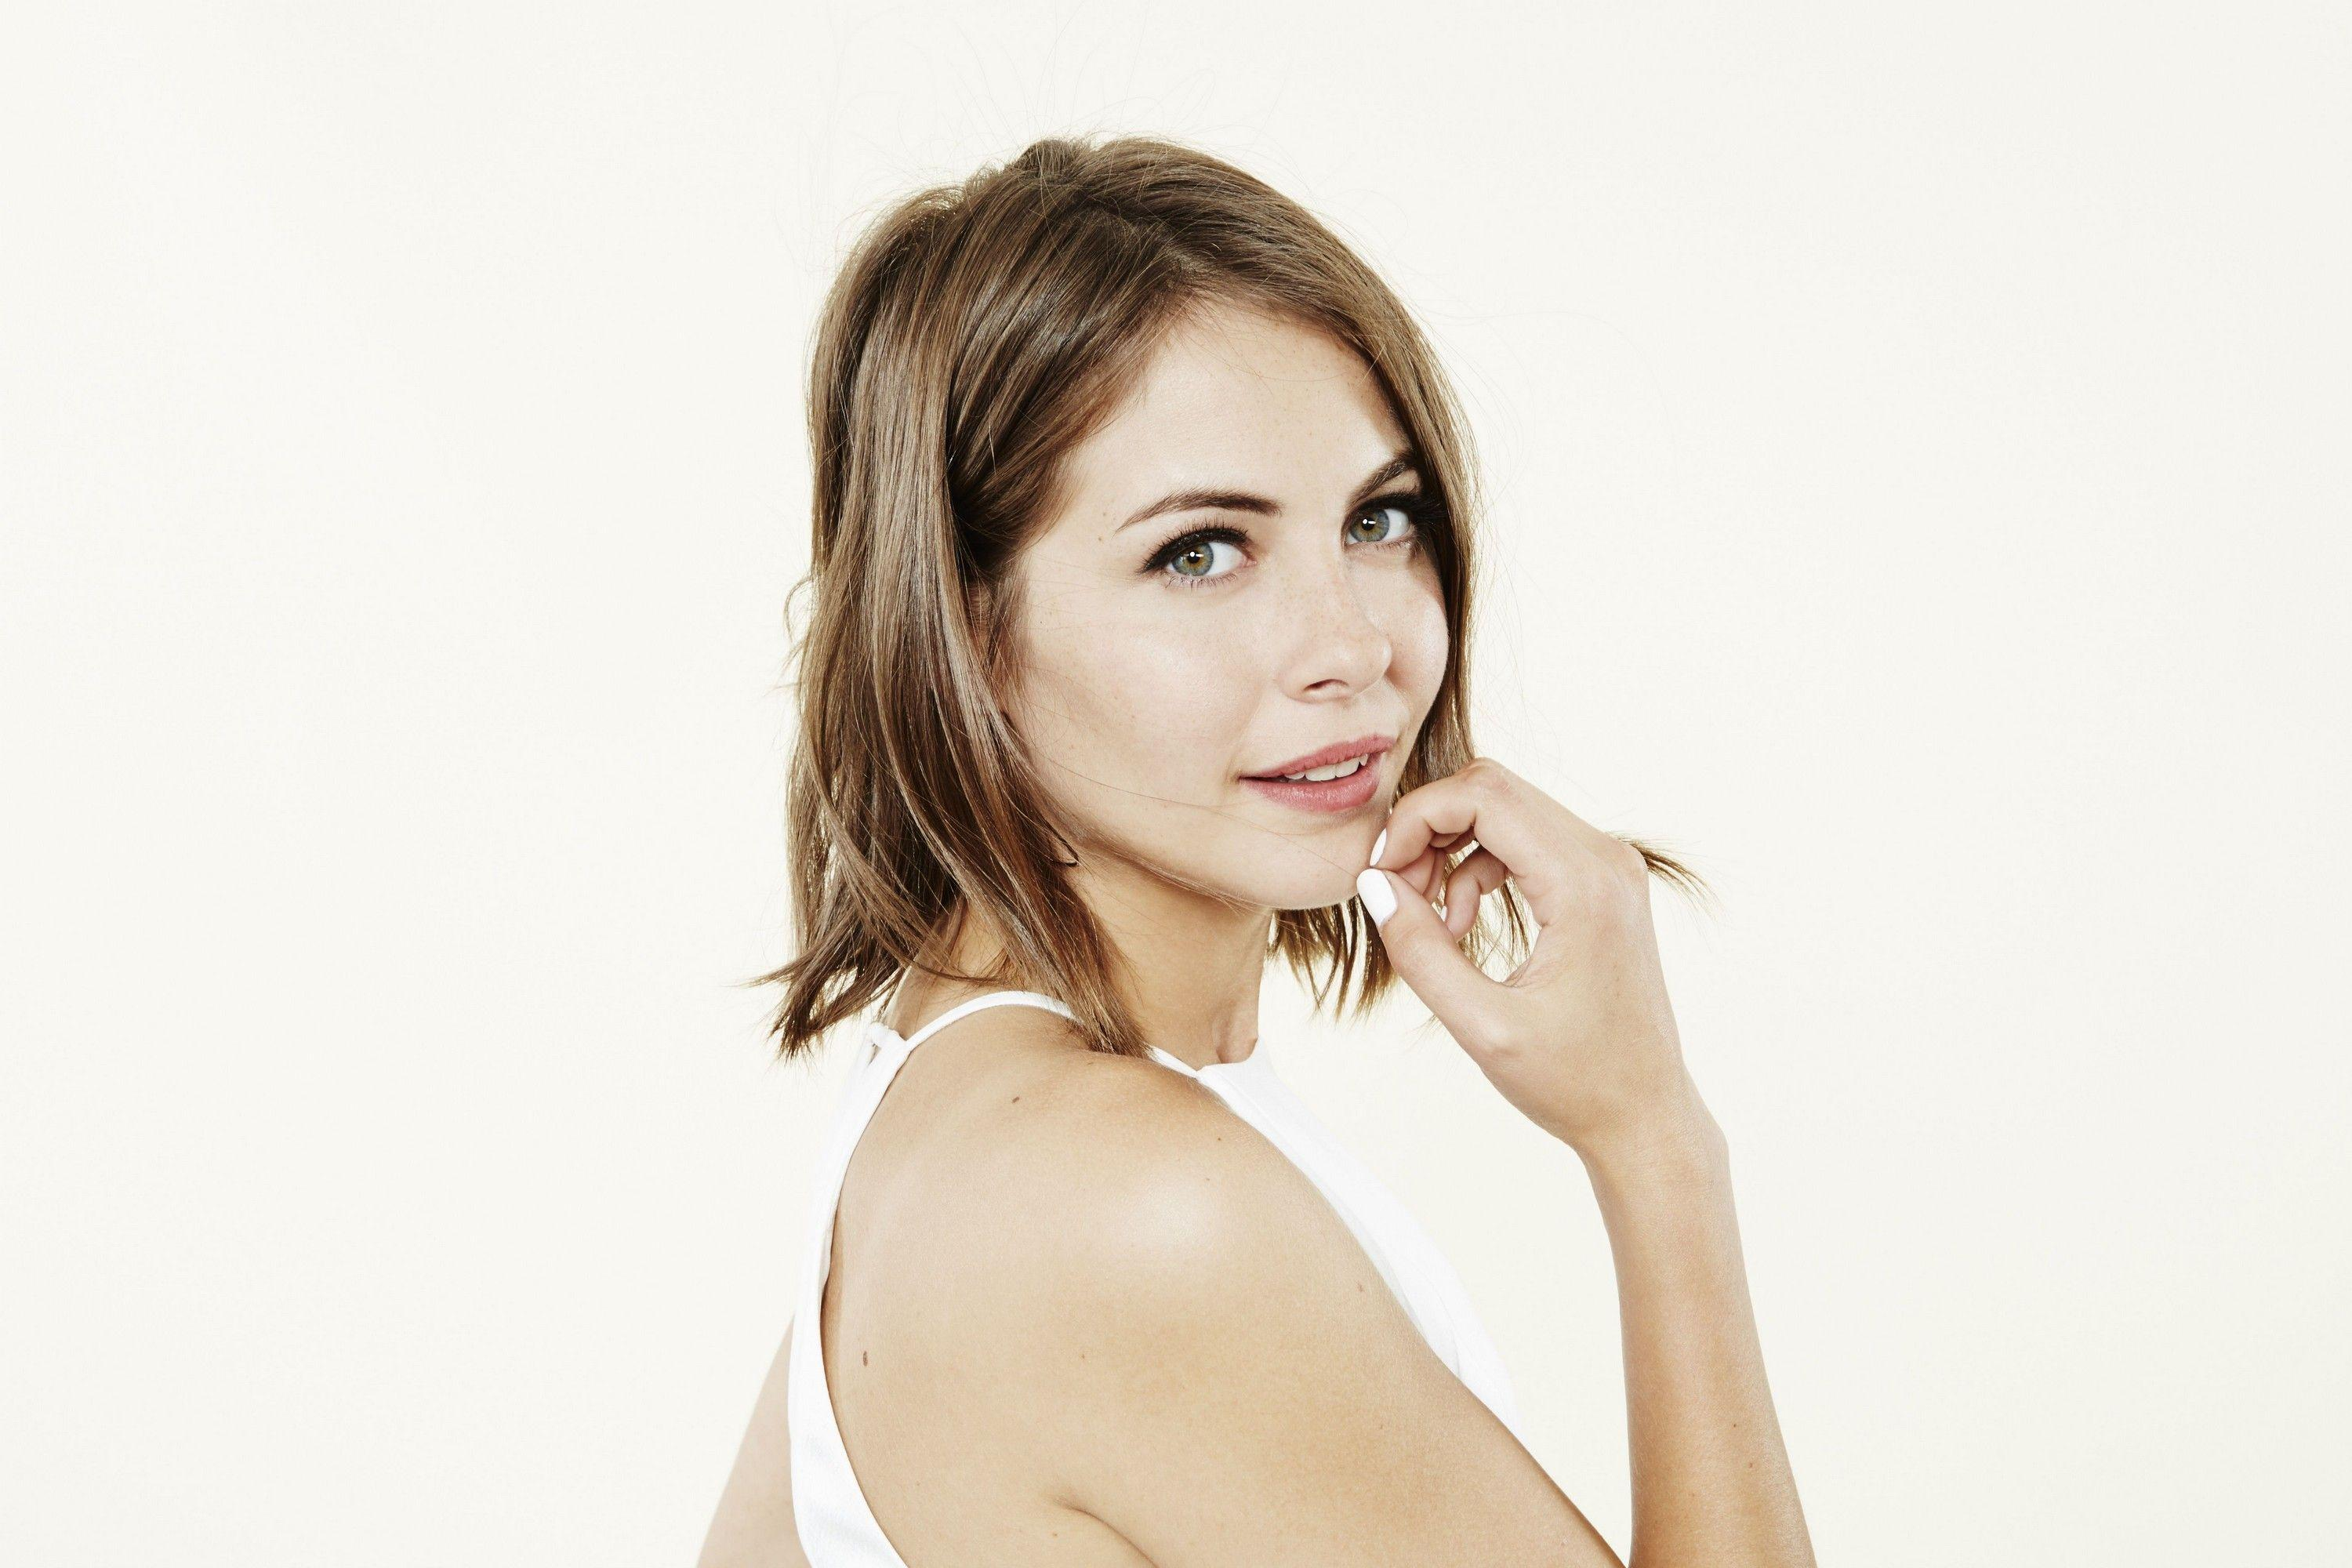 Wallpaper Willa Holland, 2017, Celebrities, #7012